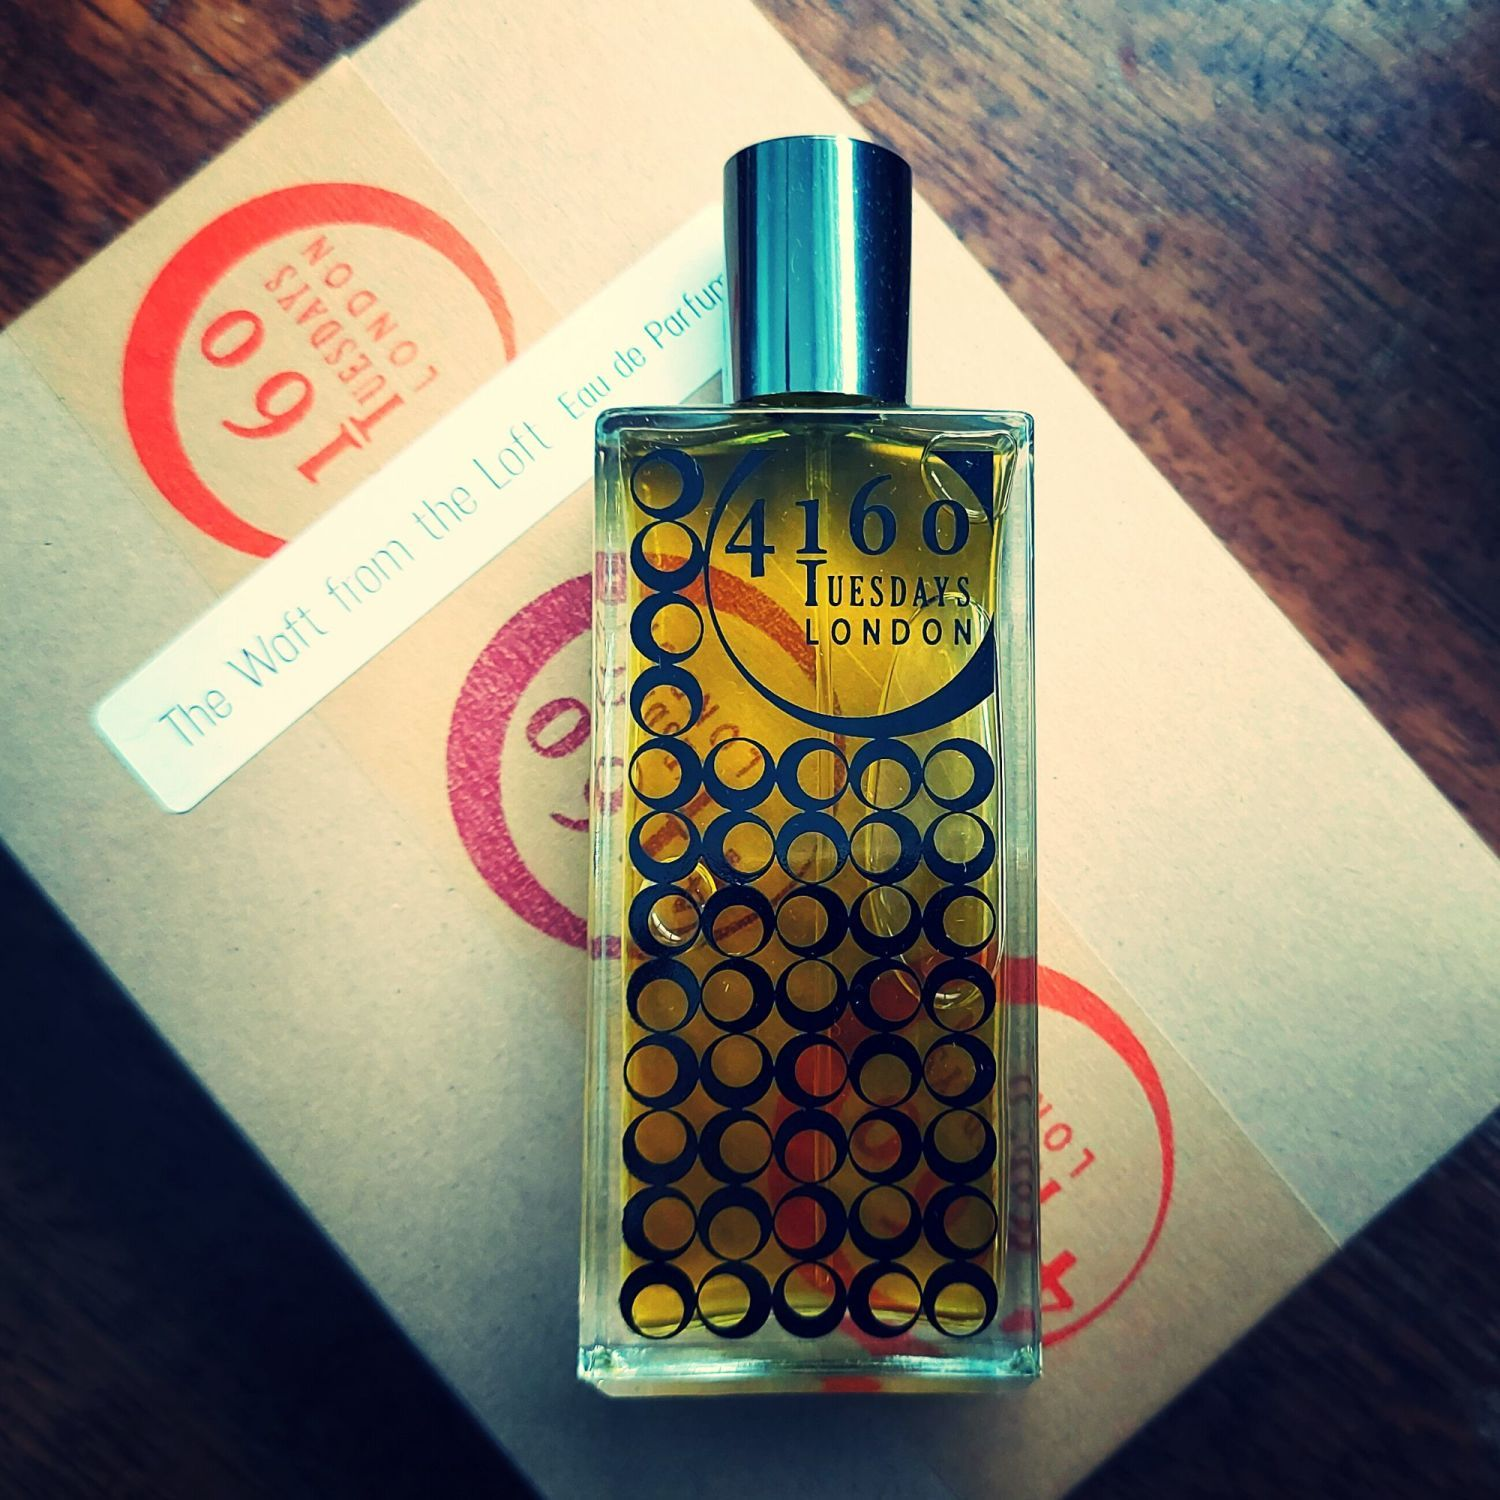 A bottle of 4160 Tuesdays perfume on top of it's box